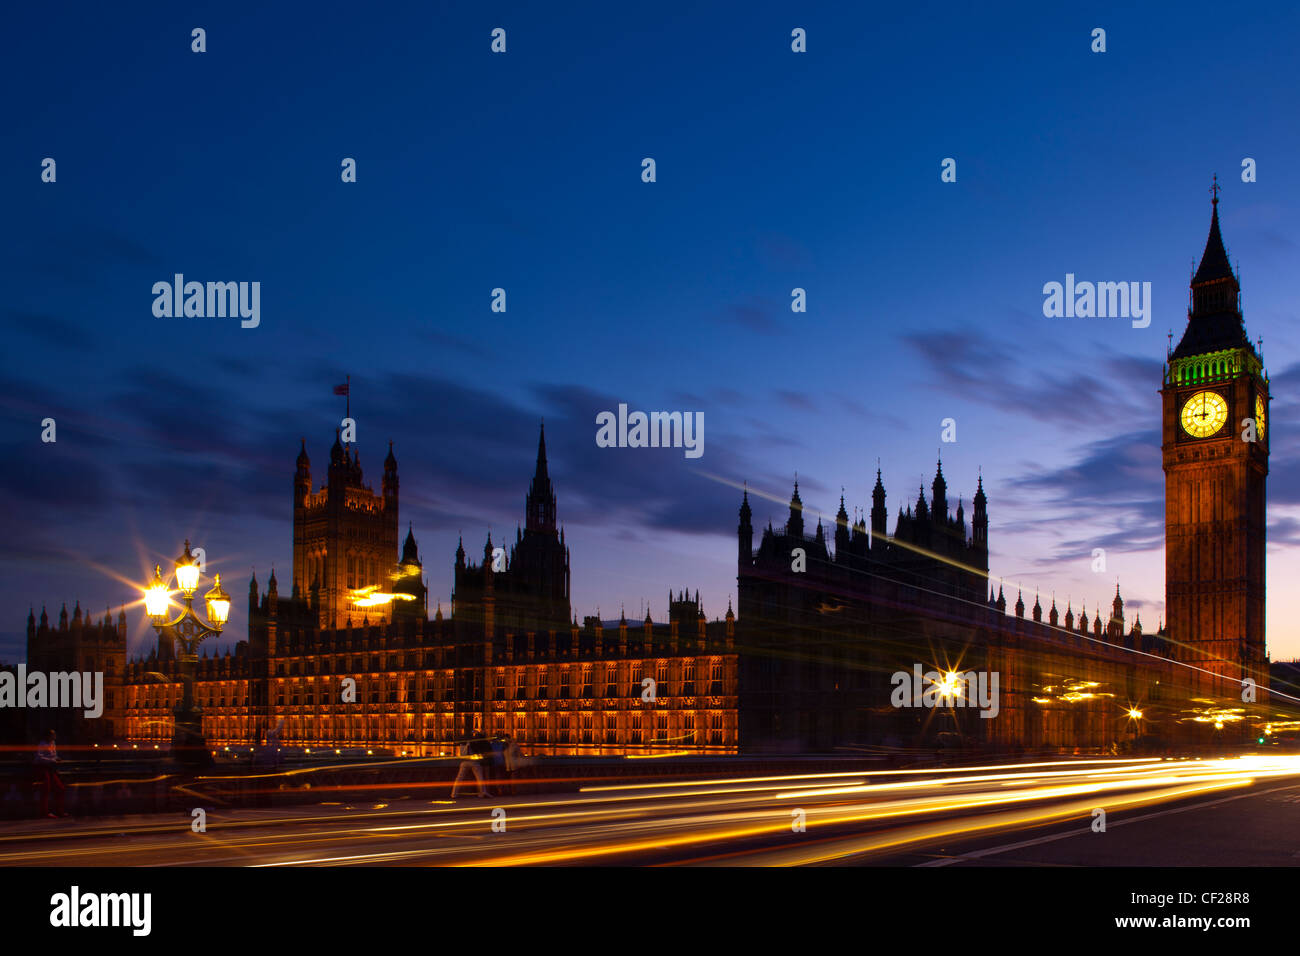 Light trails from traffic passing over Westminster Bridge with Big Ben and the Houses of Parliament in the background. Stock Photo